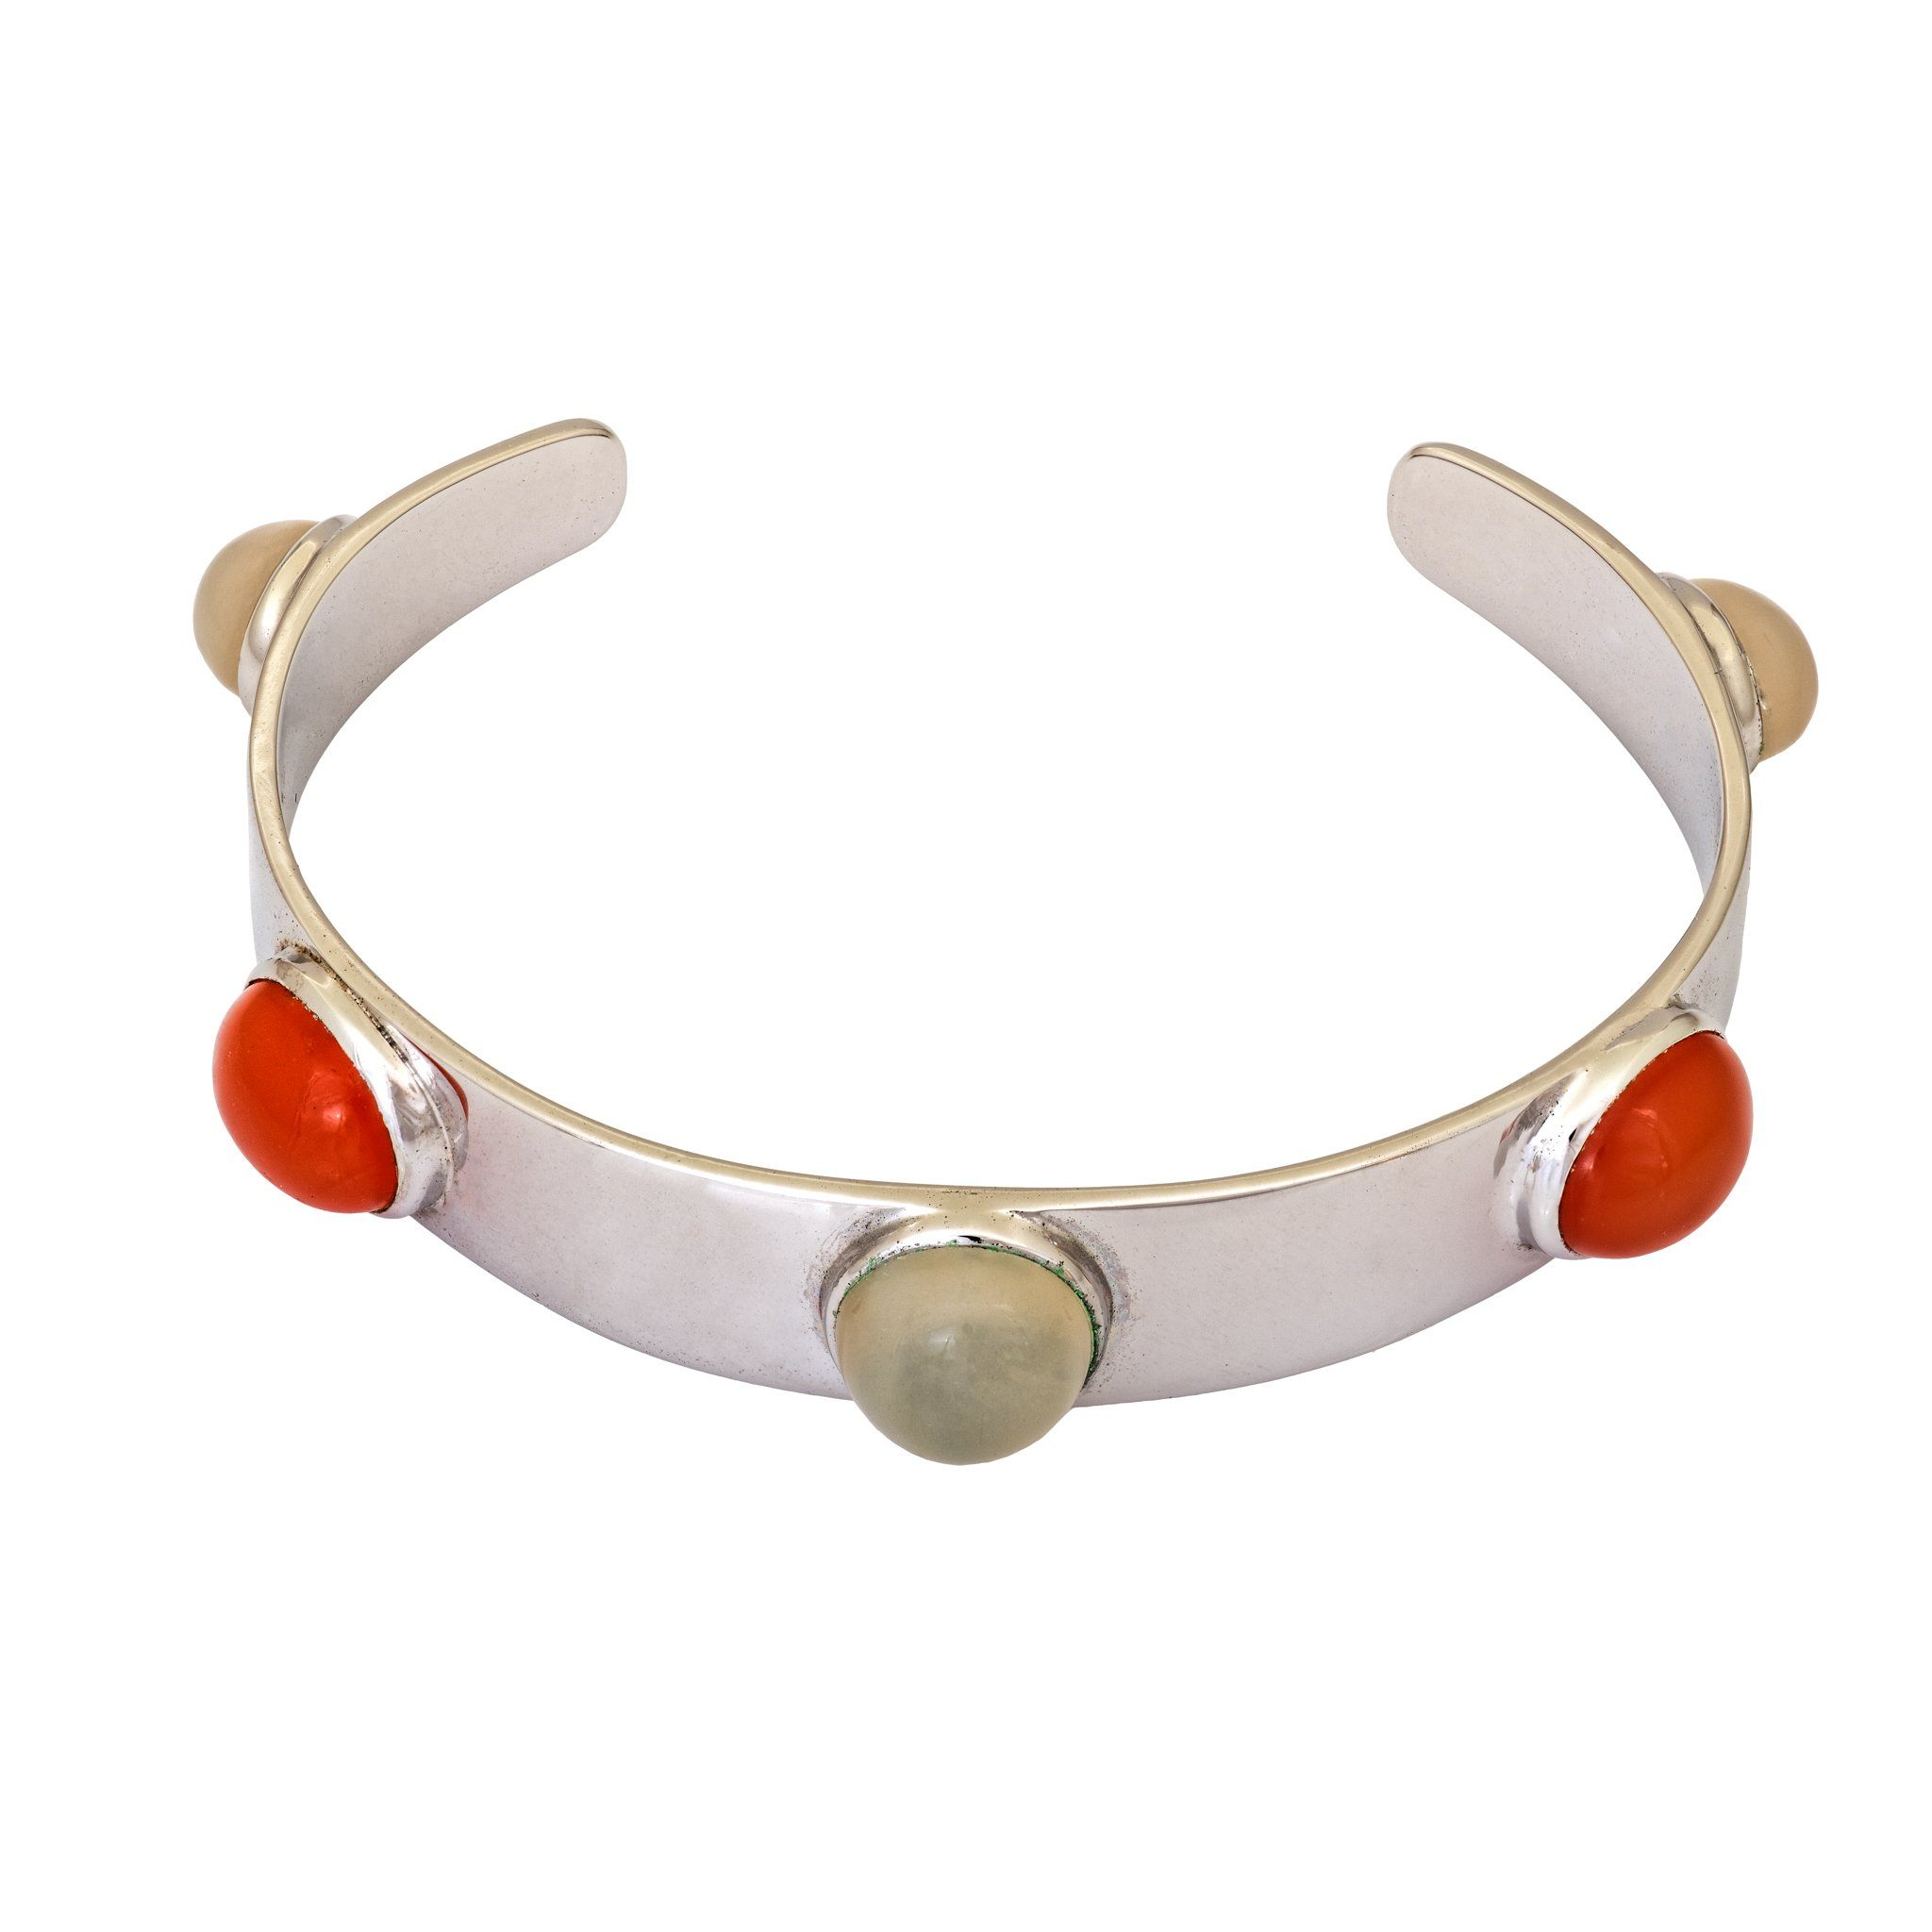 DAKERA moonstone and carnelian cabochon bangle - MadamSiam